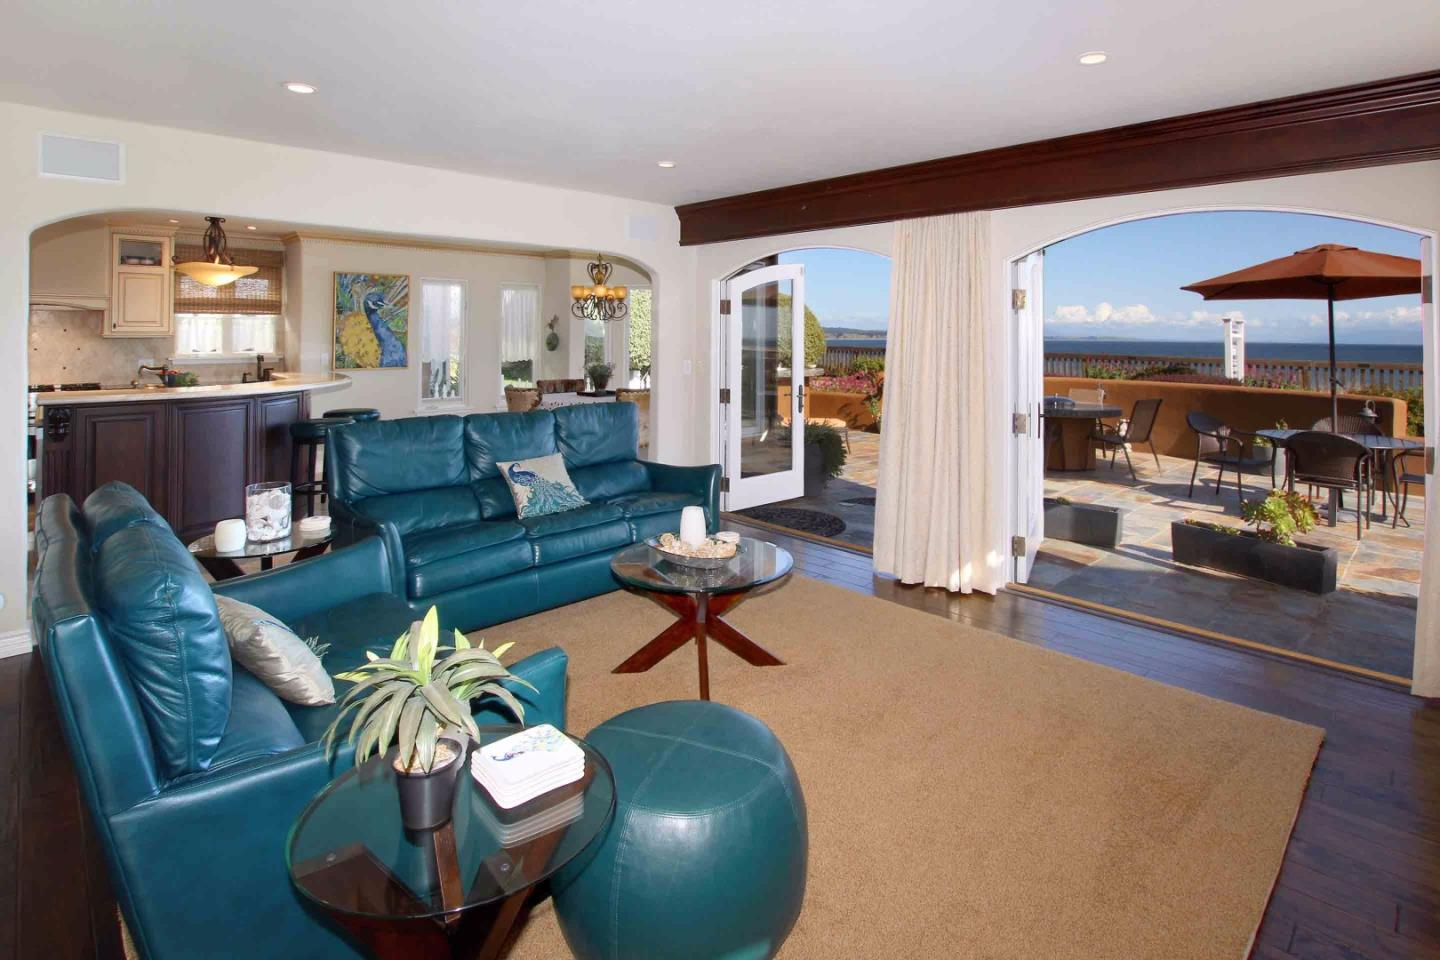 Additional photo for property listing at 304 Grand Ave  CAPITOLA, CALIFORNIA 95010